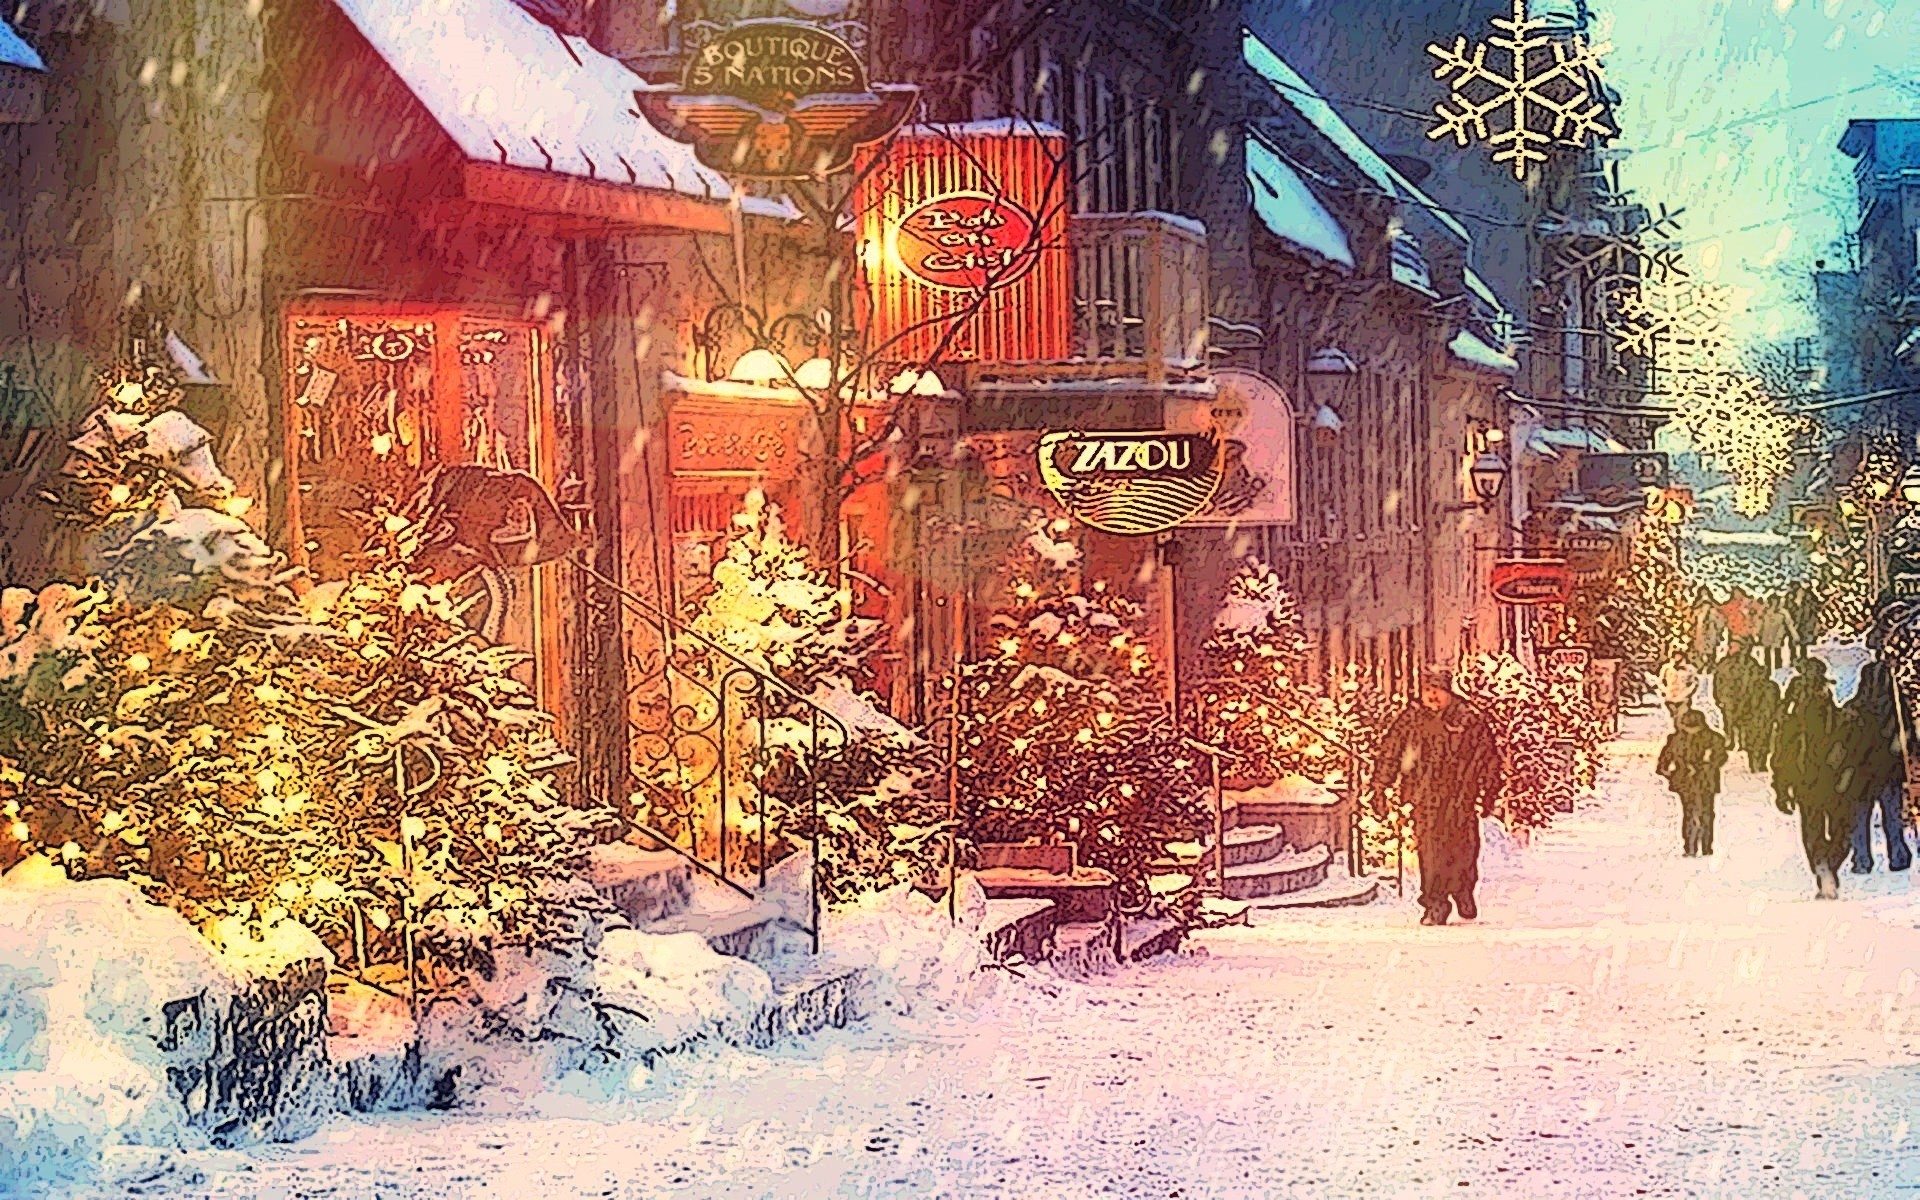 Snow in the City Wallpaper